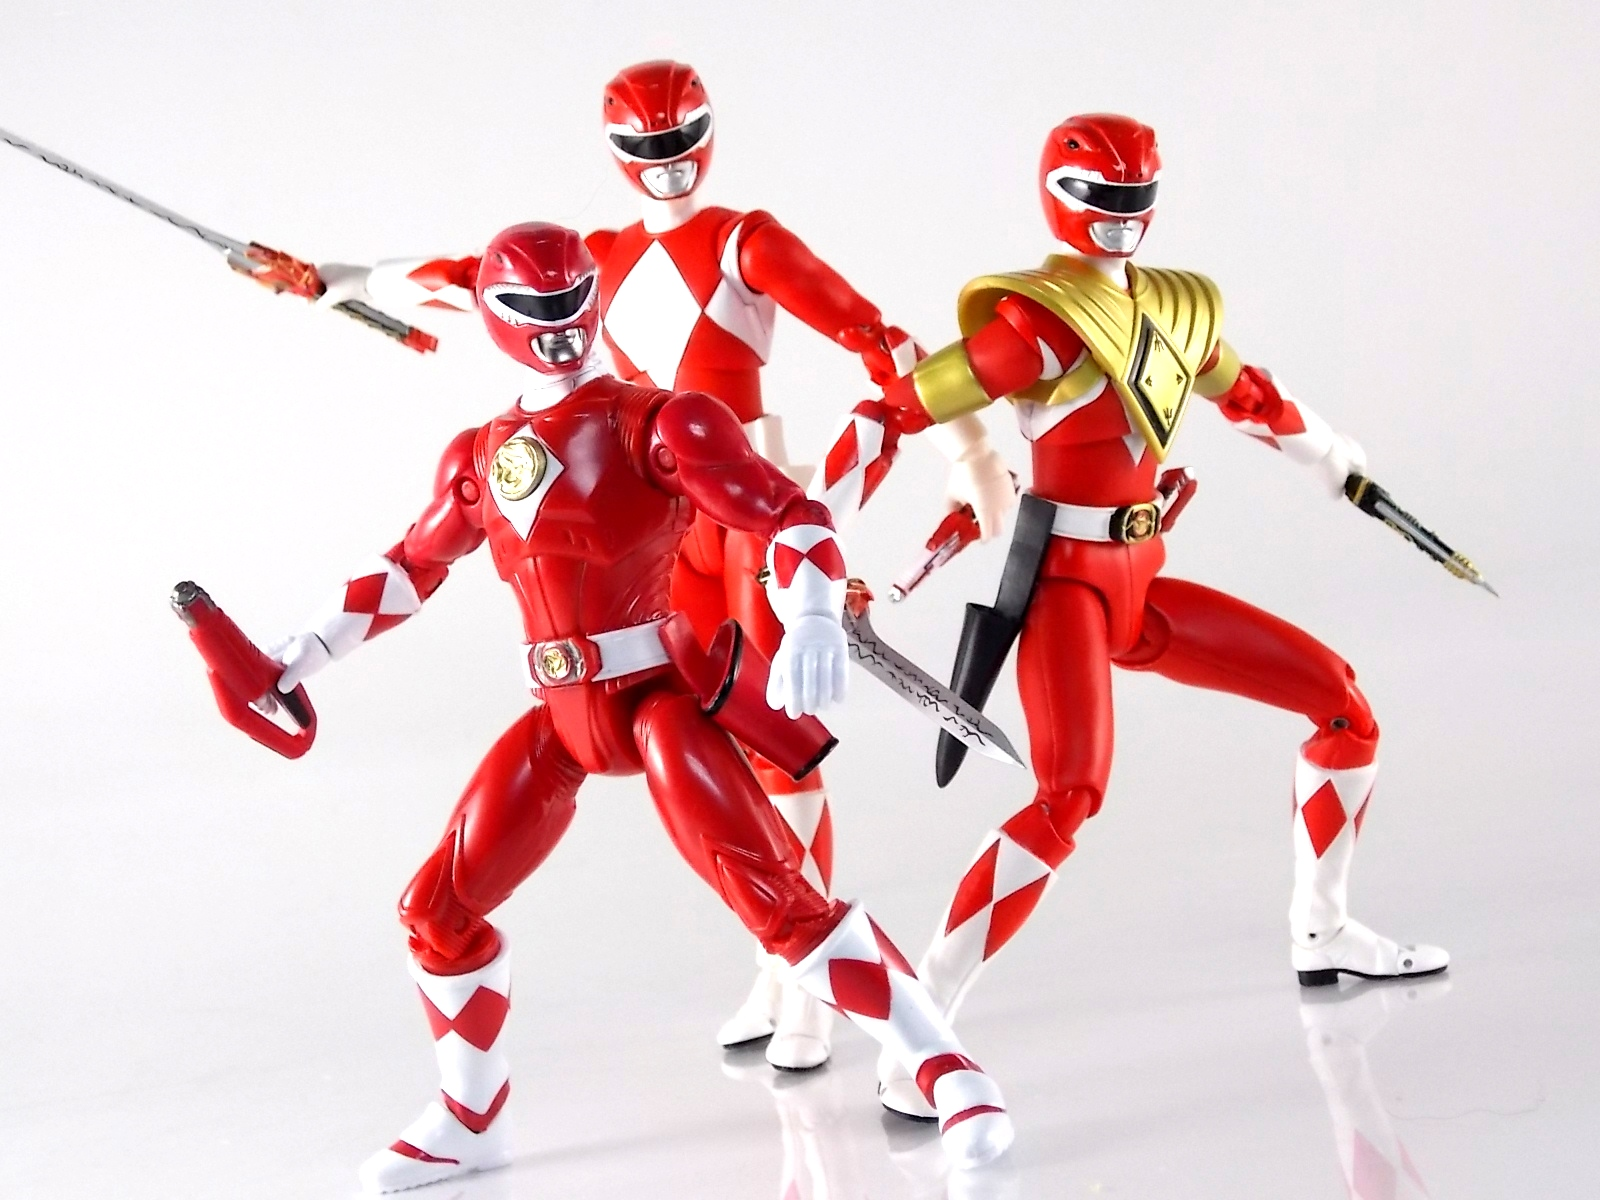 Sabans Power Rangers Movie Then and Now Red Ranger Action Figure Set 5 Inches